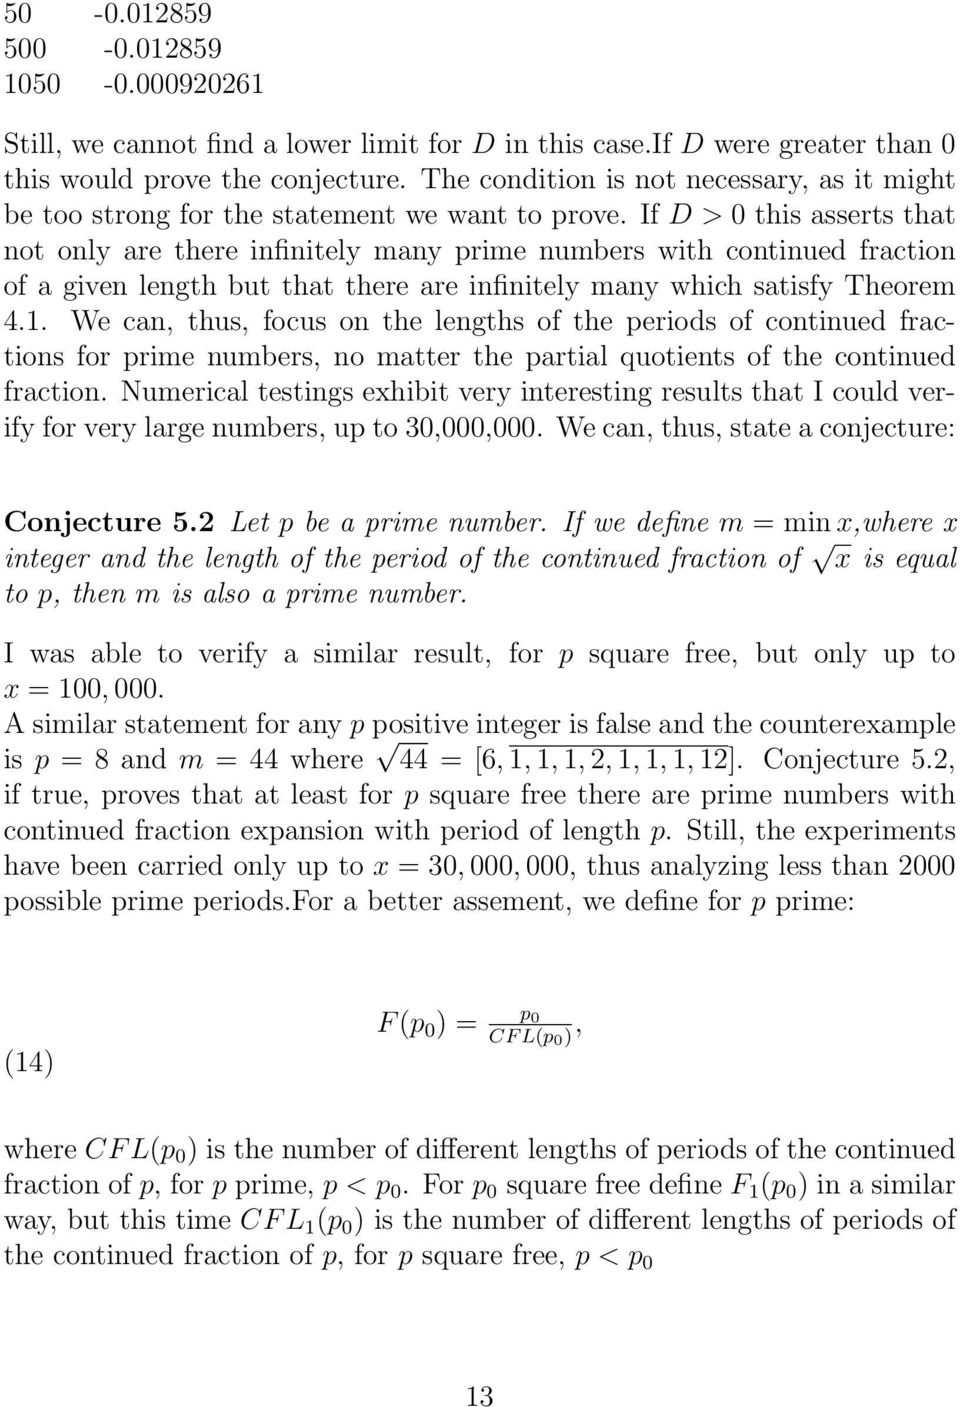 If D > 0 this asserts that not only are there infinitely many prime numbers with continued fraction of a given length but that there are infinitely many which satisfy Theorem 4.1.